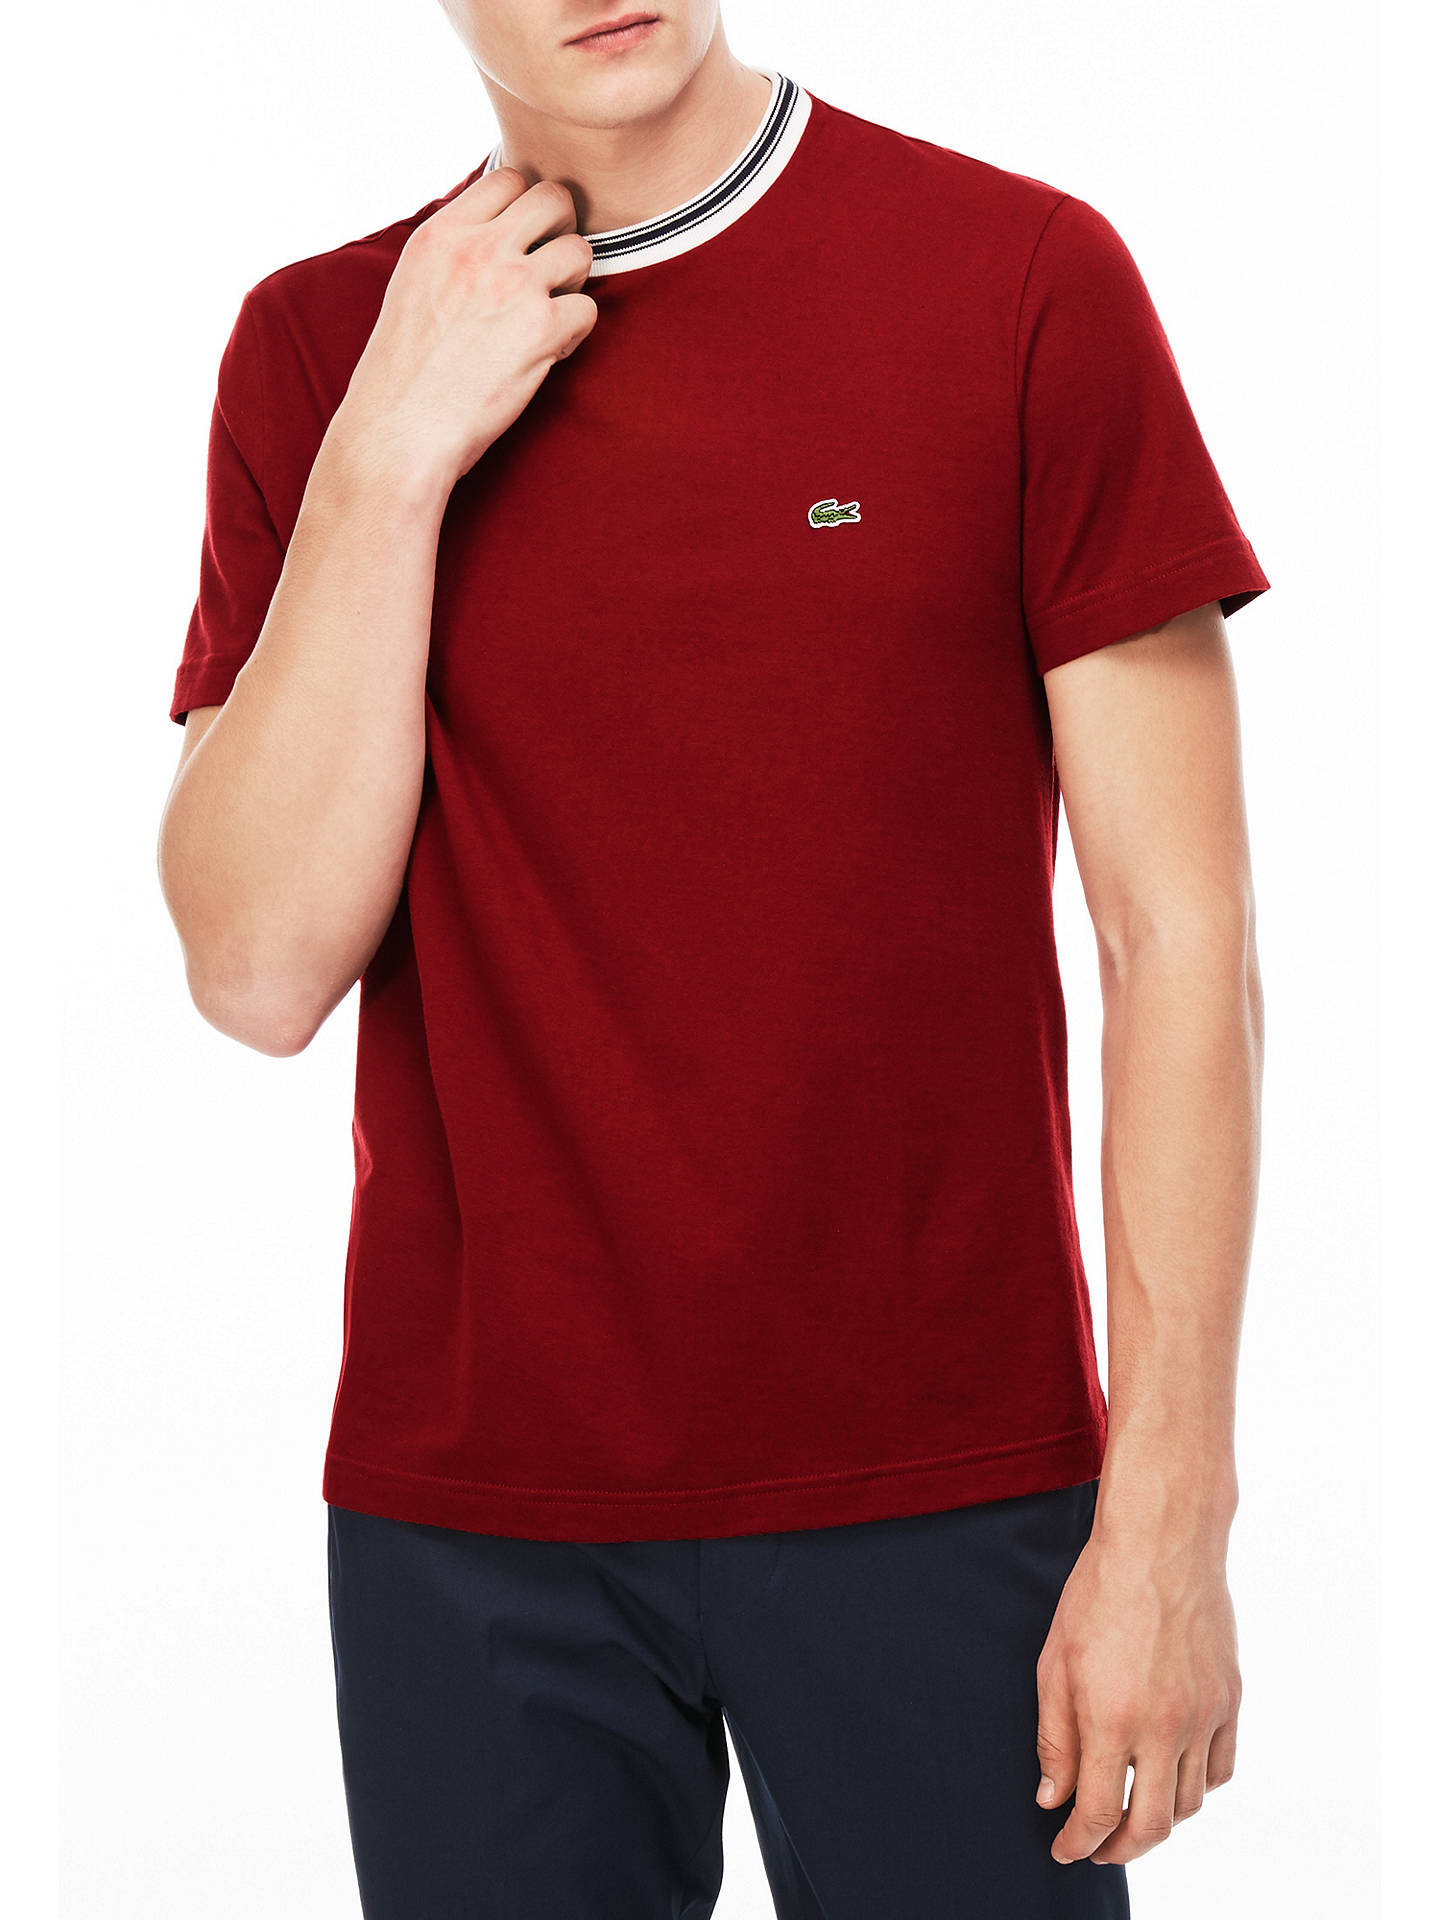 bb94cfcb Buy Lacoste Twin Tipped Crew Neck T-Shirt, Red, S Online at johnlewis ...